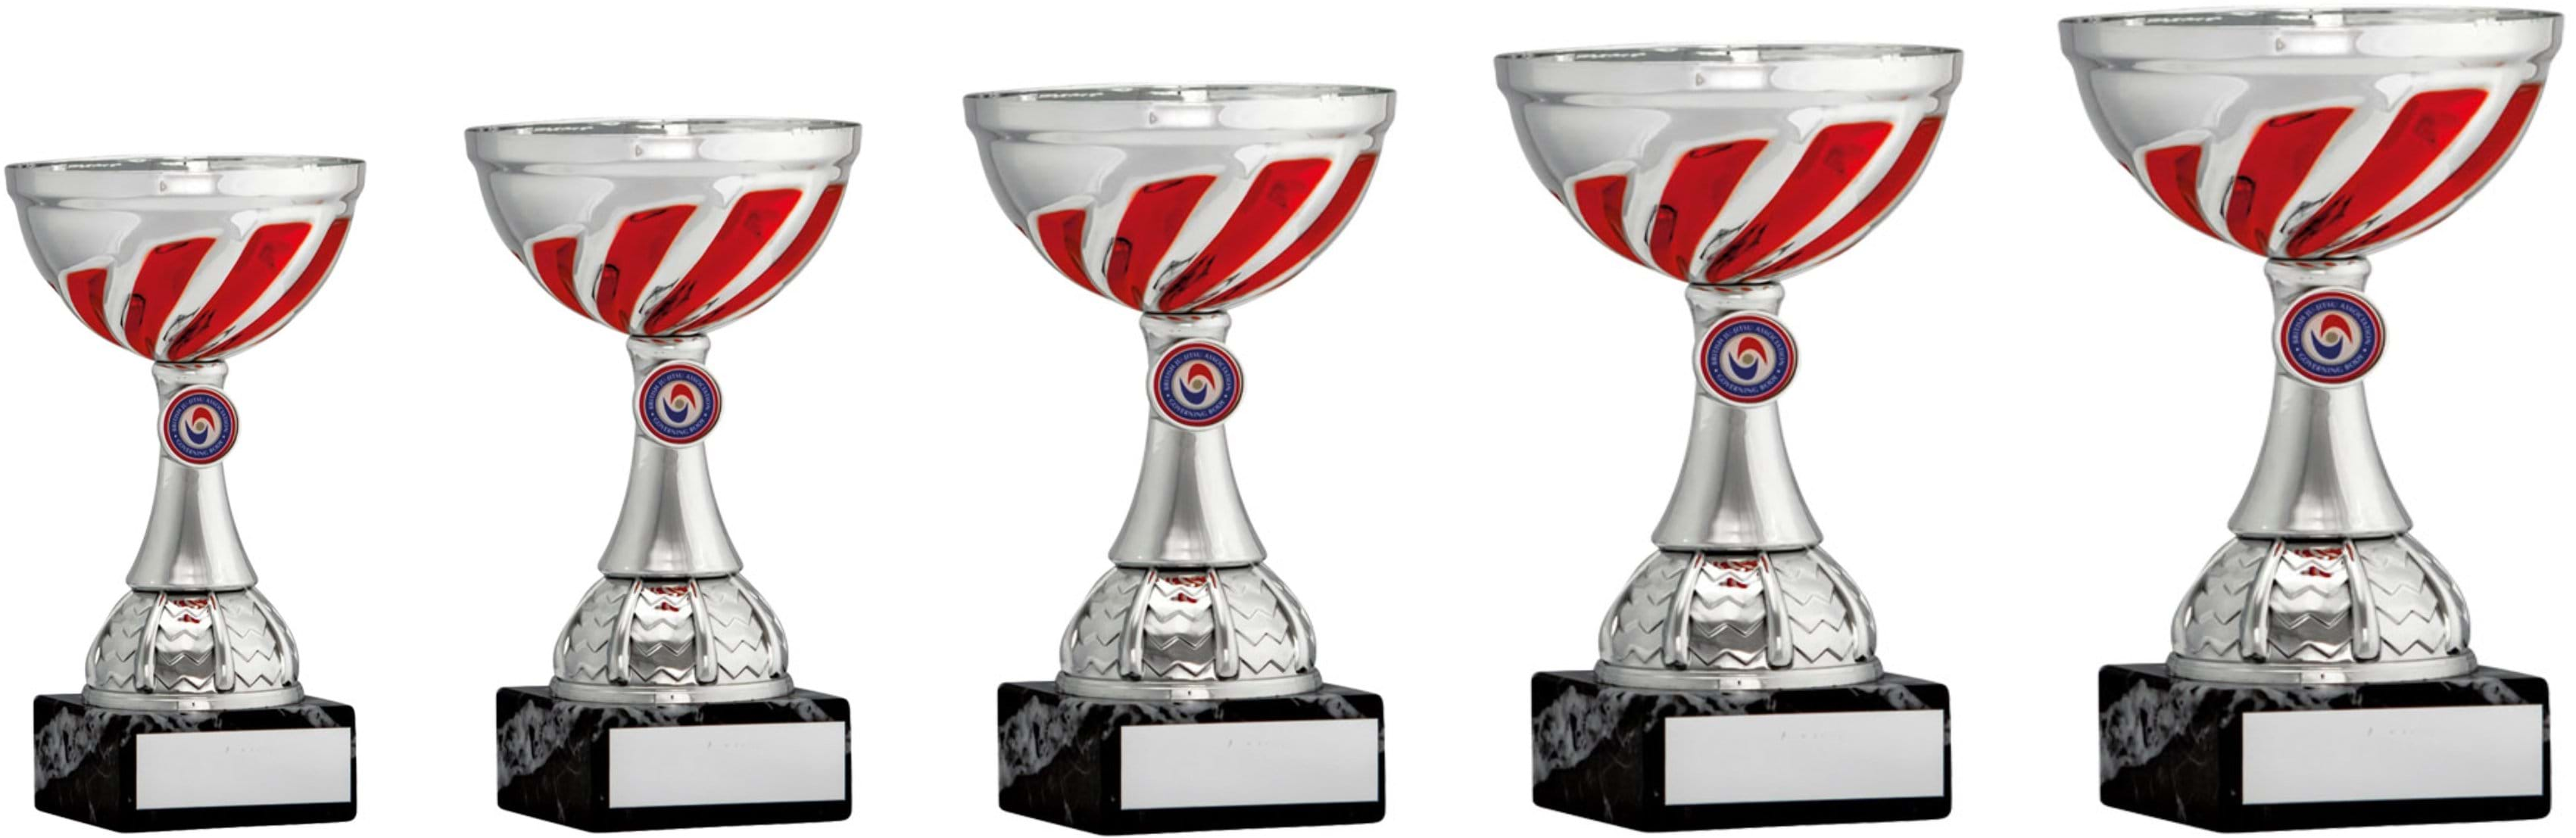 Silver Red Swirl Cup Trophies 1903 Series